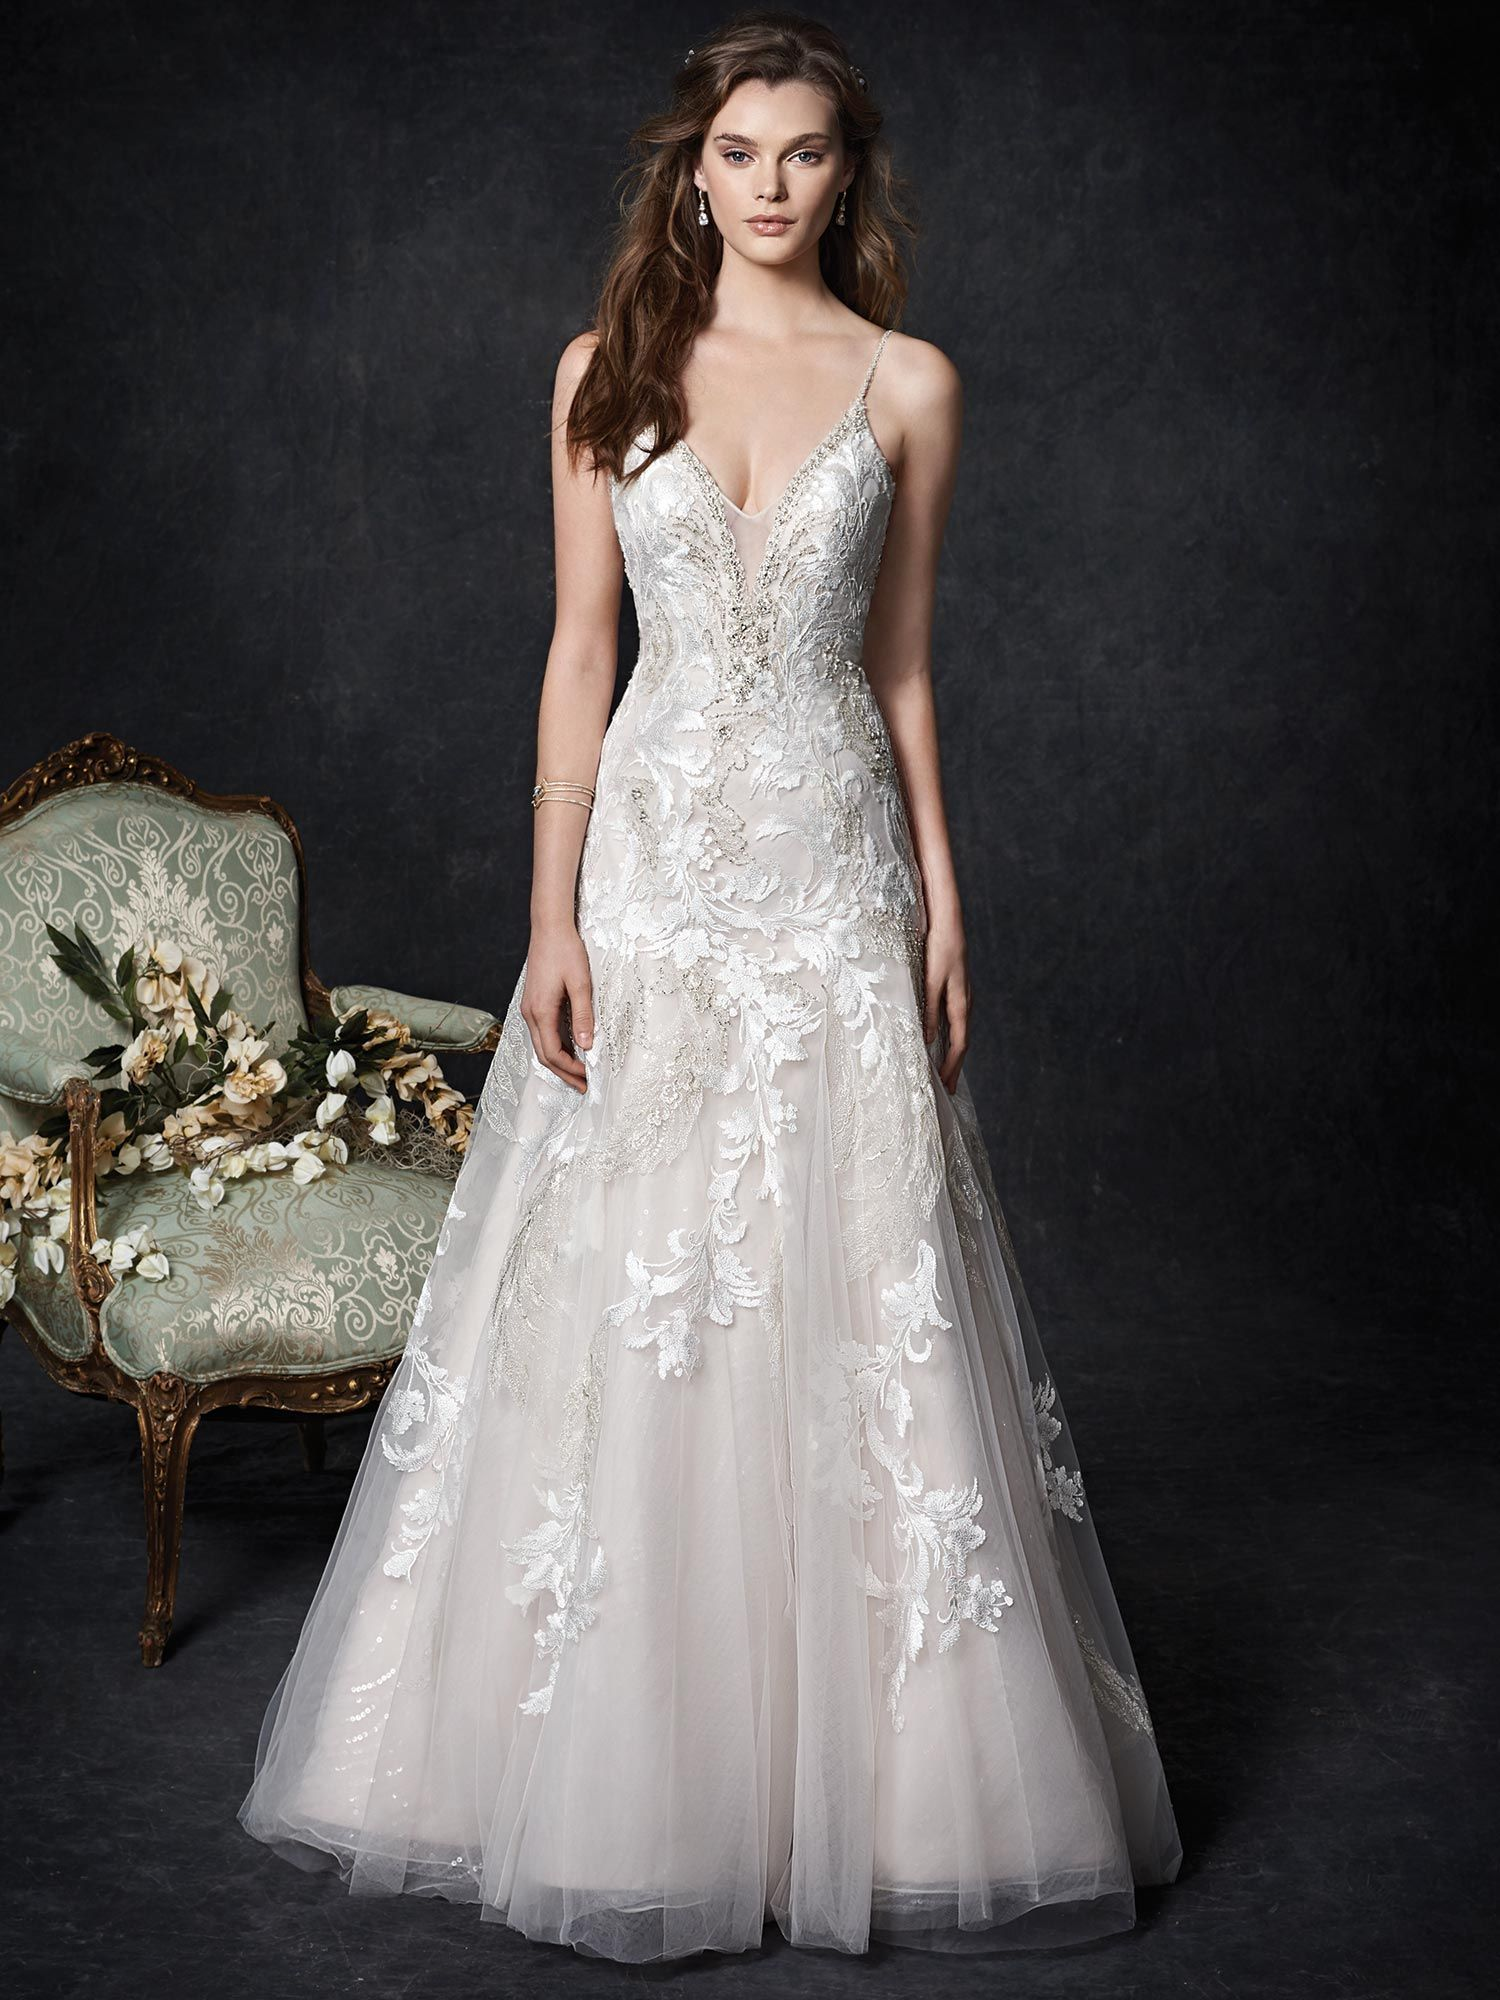 685c164e4 Kenneth Winston  1758 - Modified A-line wedding gown with scattered metallic  lace appliques and a plunging illusion neckline. The beaded spaghetti  straps ...